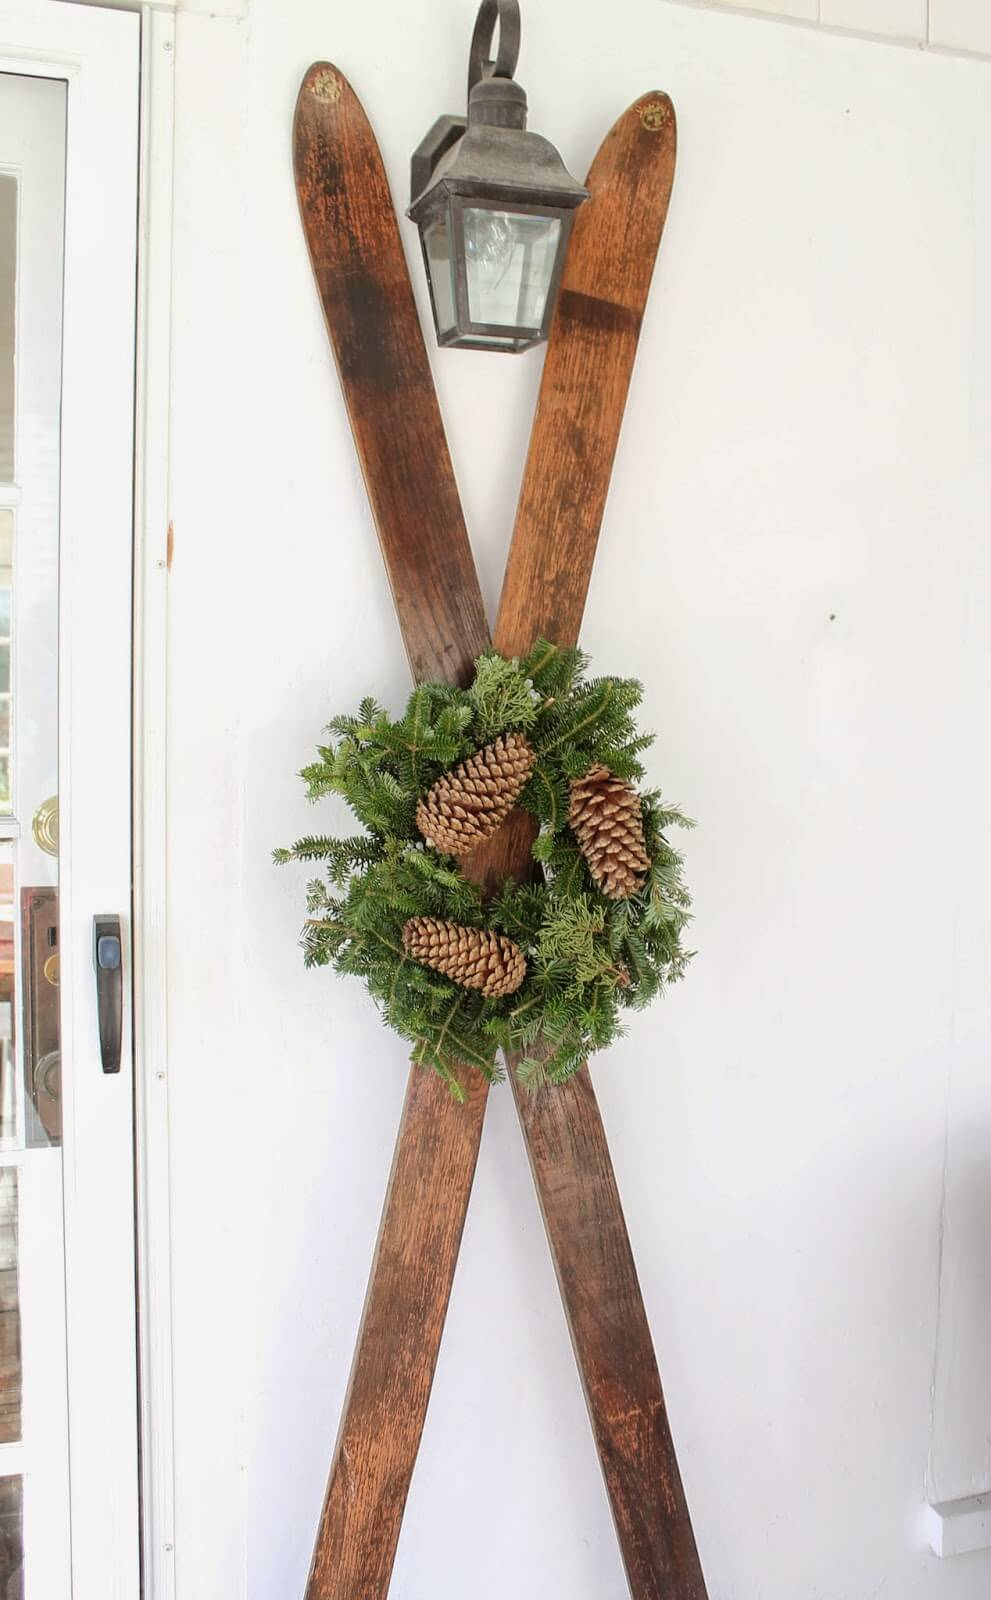 Antique Skis With Pine Wreath Display